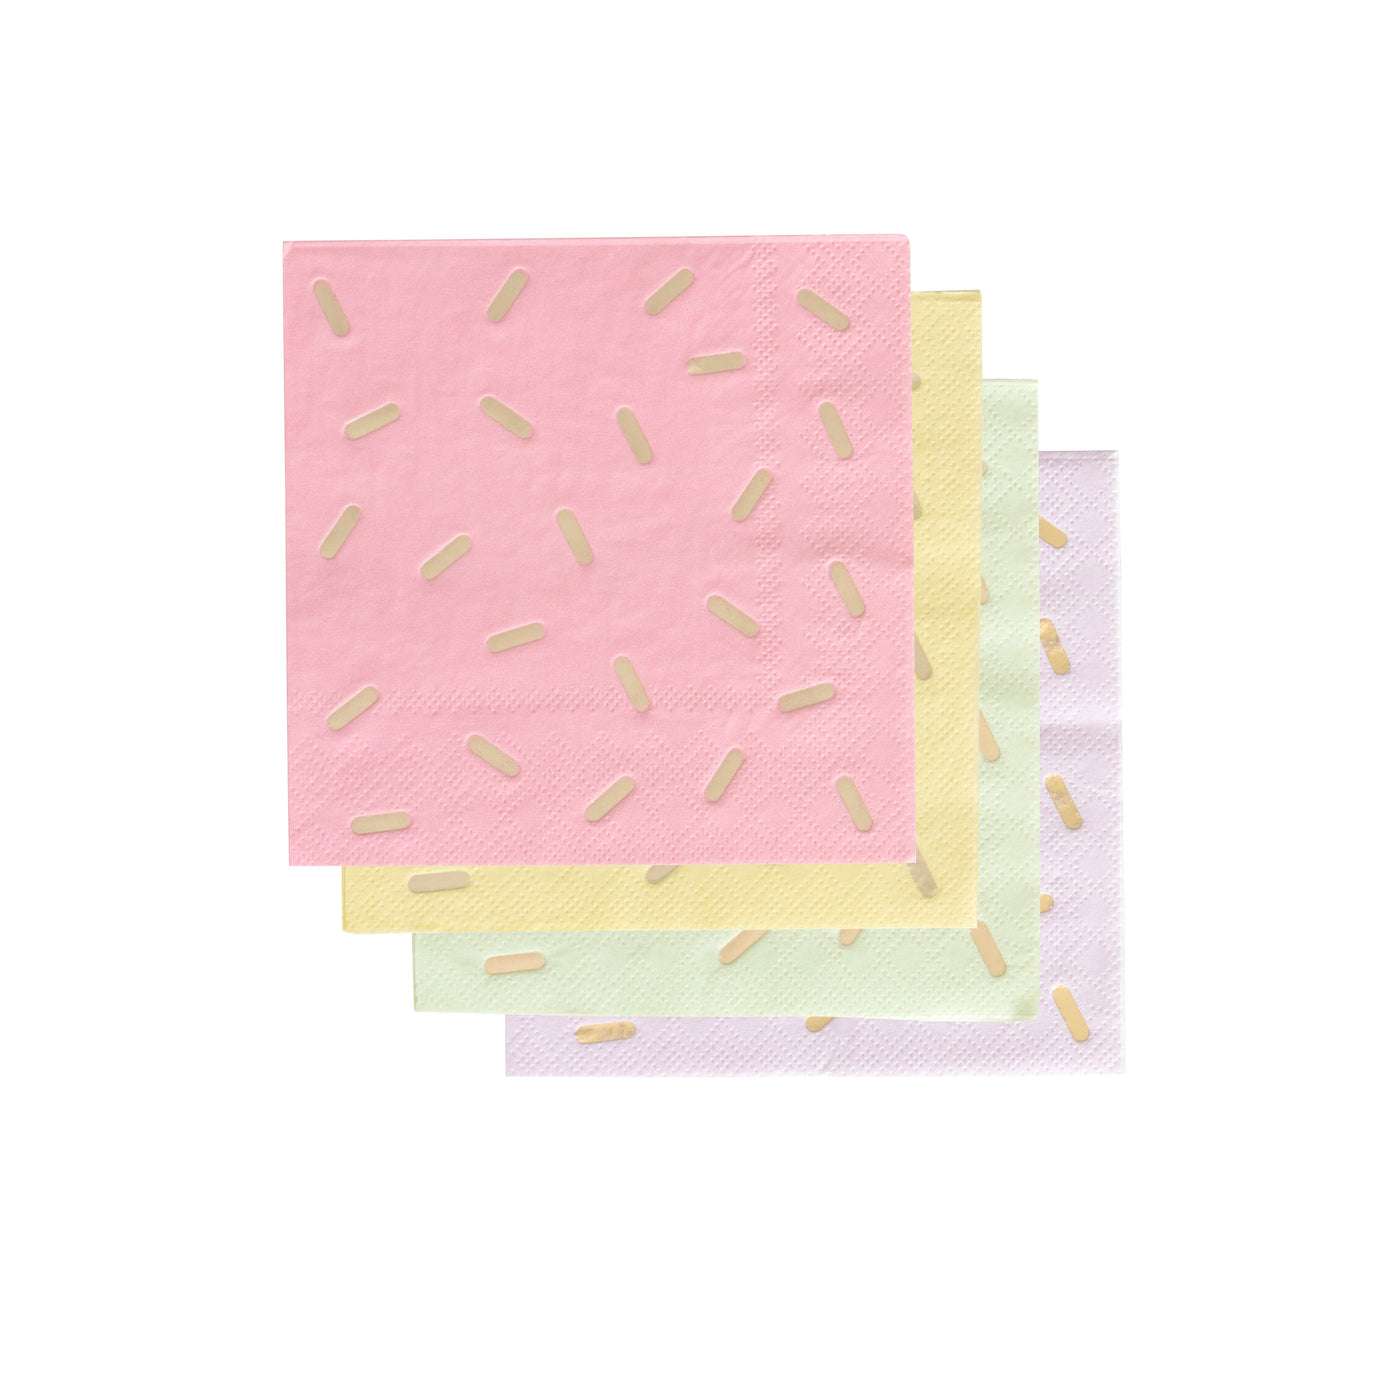 ice cream sprinkle napkins in pink, yellow, green and purple